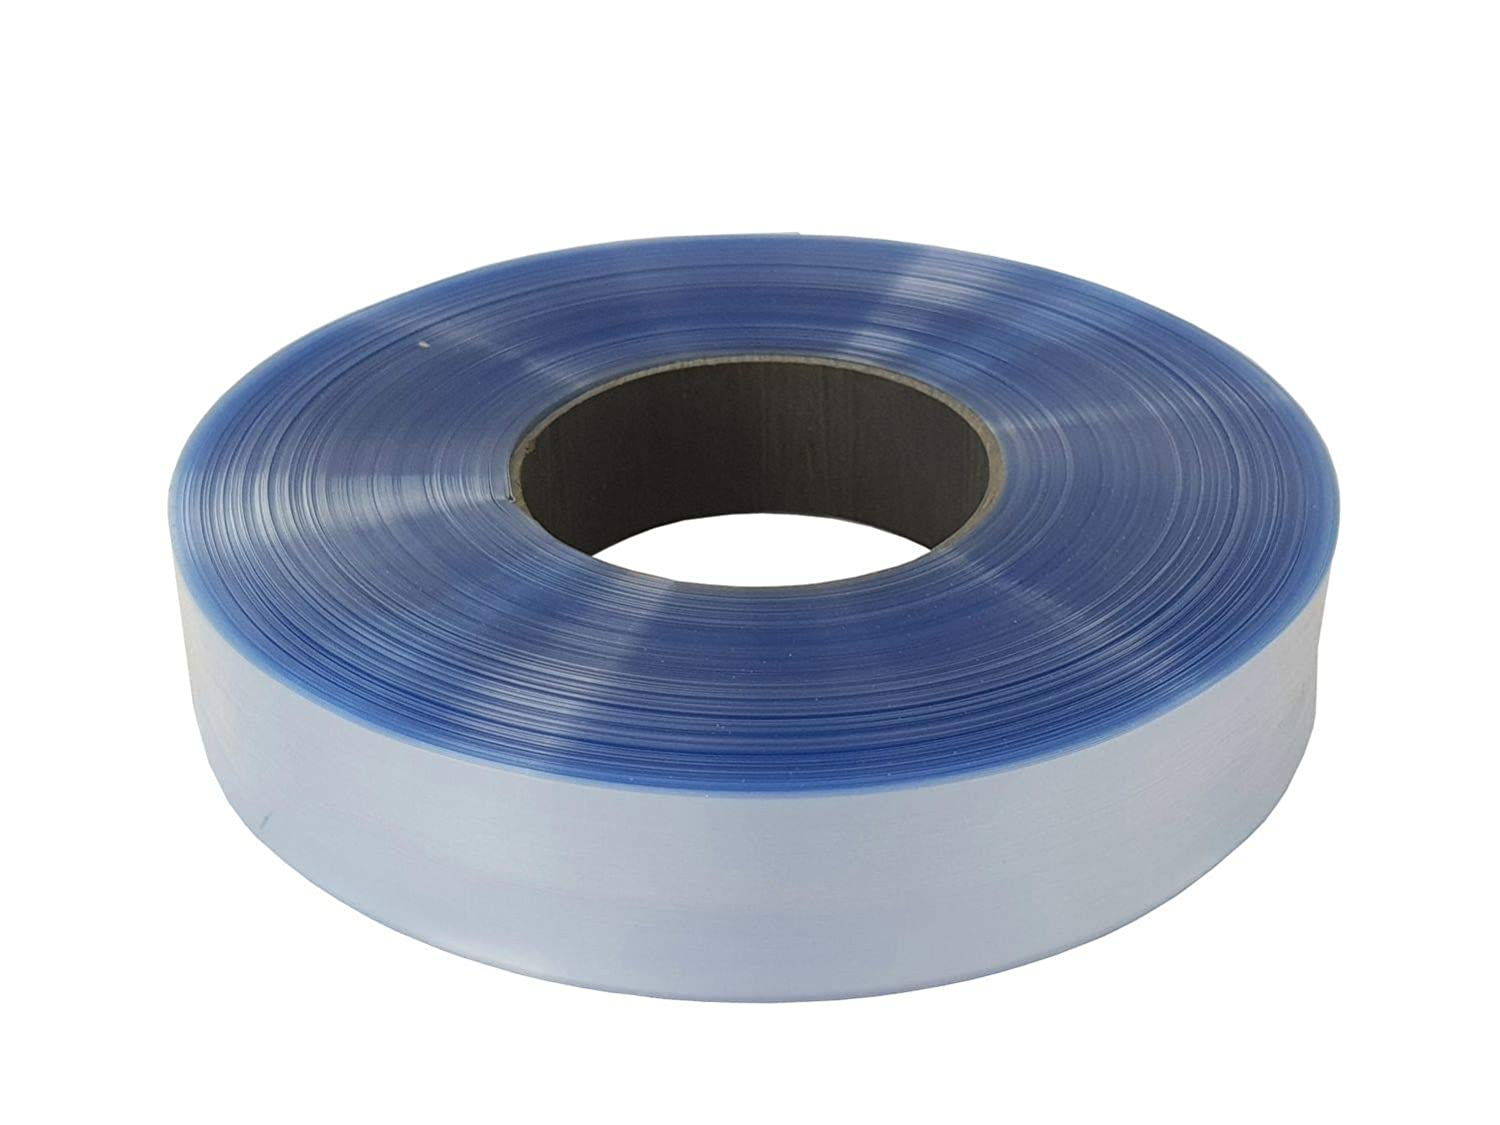 2m Heat-shrinkable tubing 20mm to 200mm Lay Flat Width Choose Colour Colour:Black Size:200 mm